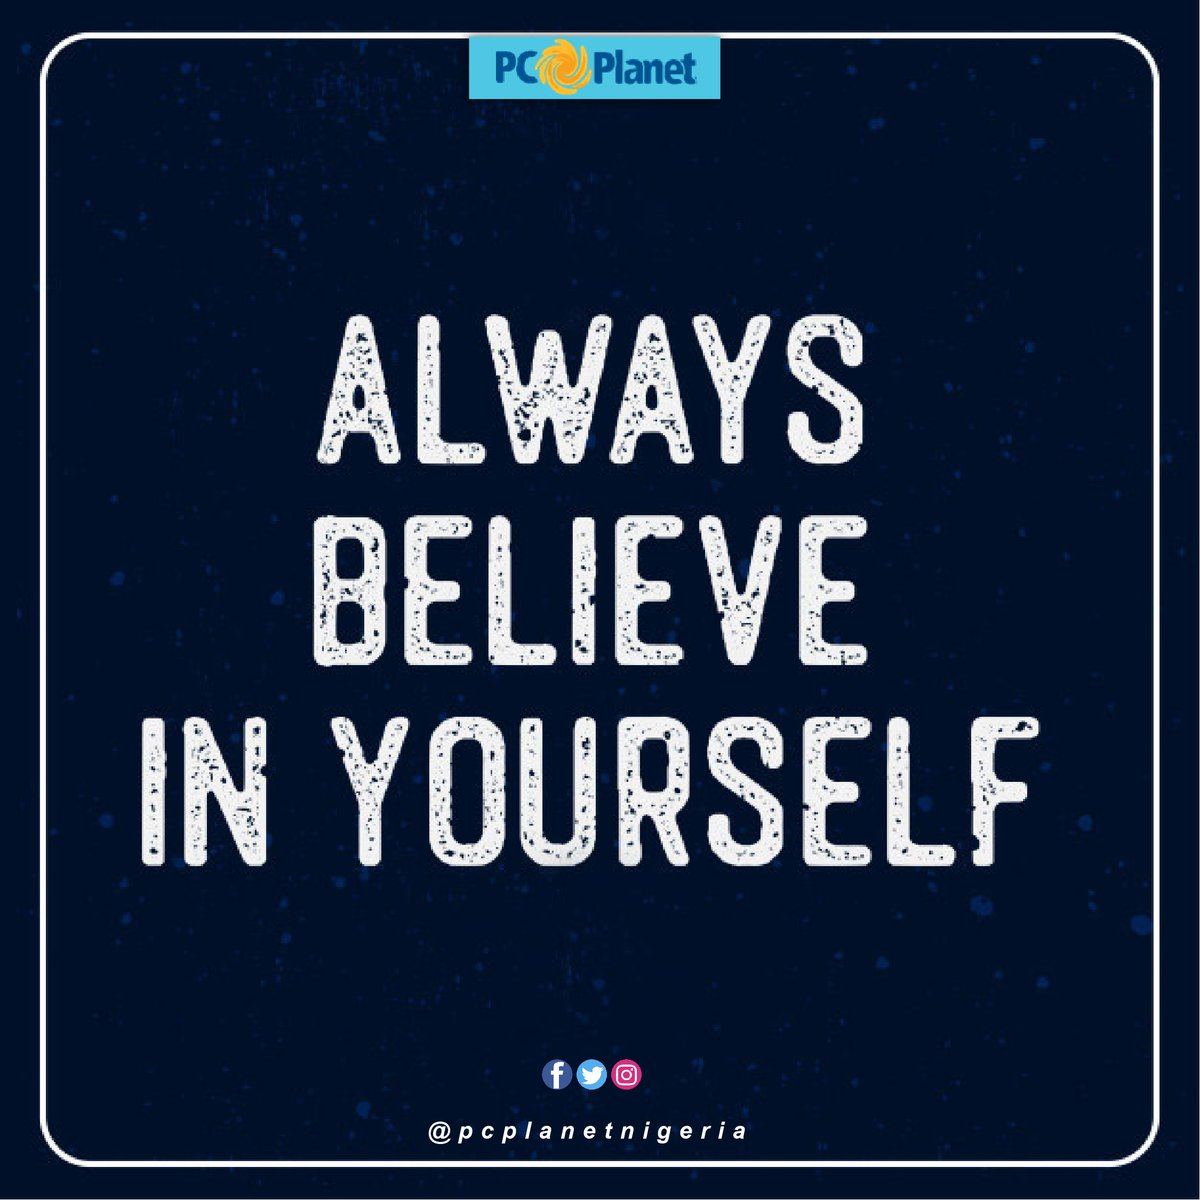 Always believe in yourself at all times. Call: 08140000114 https://t.co/k6JvKhs229 #pcplanetnigeria #phone #laptop #lenovo #hpprinter #dell #acer #asus #printer #apcups #Xboxone #apple #iPad #macbookpro #samsung #iPhone #Infinix #tecno #huawei #gionee #nokia #MondayMotivation https://t.co/YJEI7kUH8k